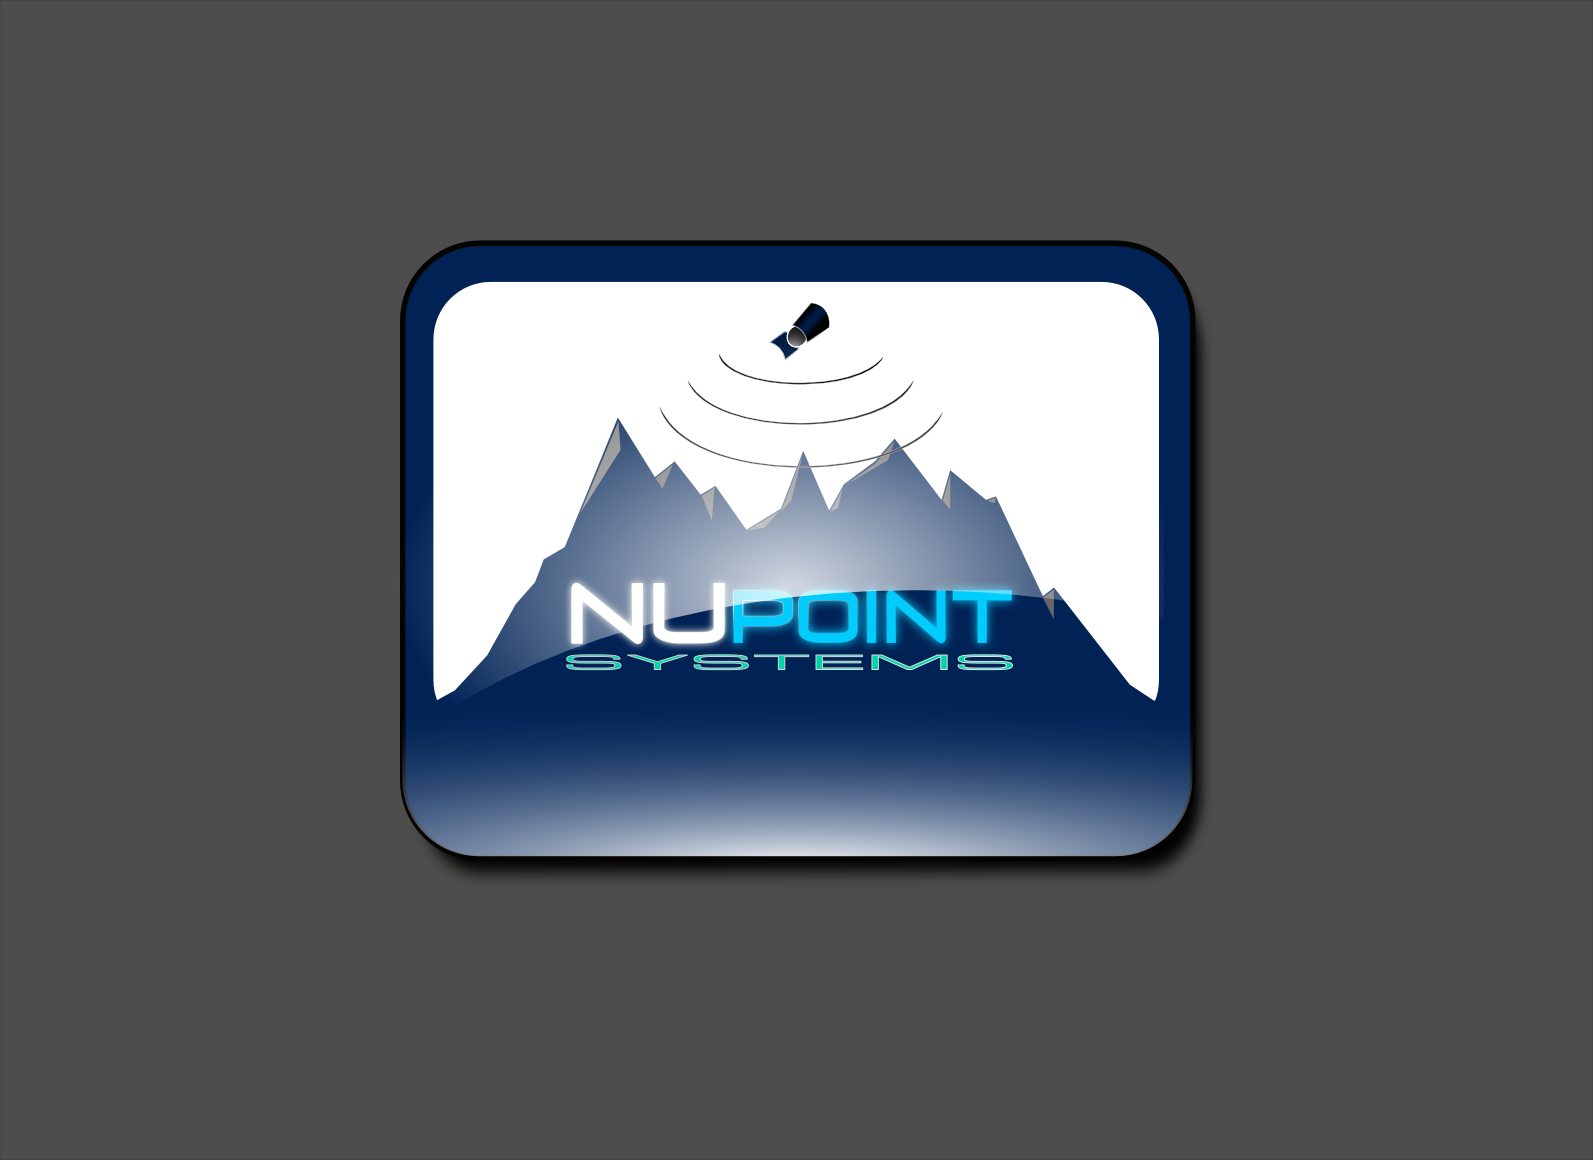 Logo Design by Joseph calunsag Cagaanan - Entry No. 116 in the Logo Design Contest Unique Logo Design Wanted for Nupoint Systems Inc..